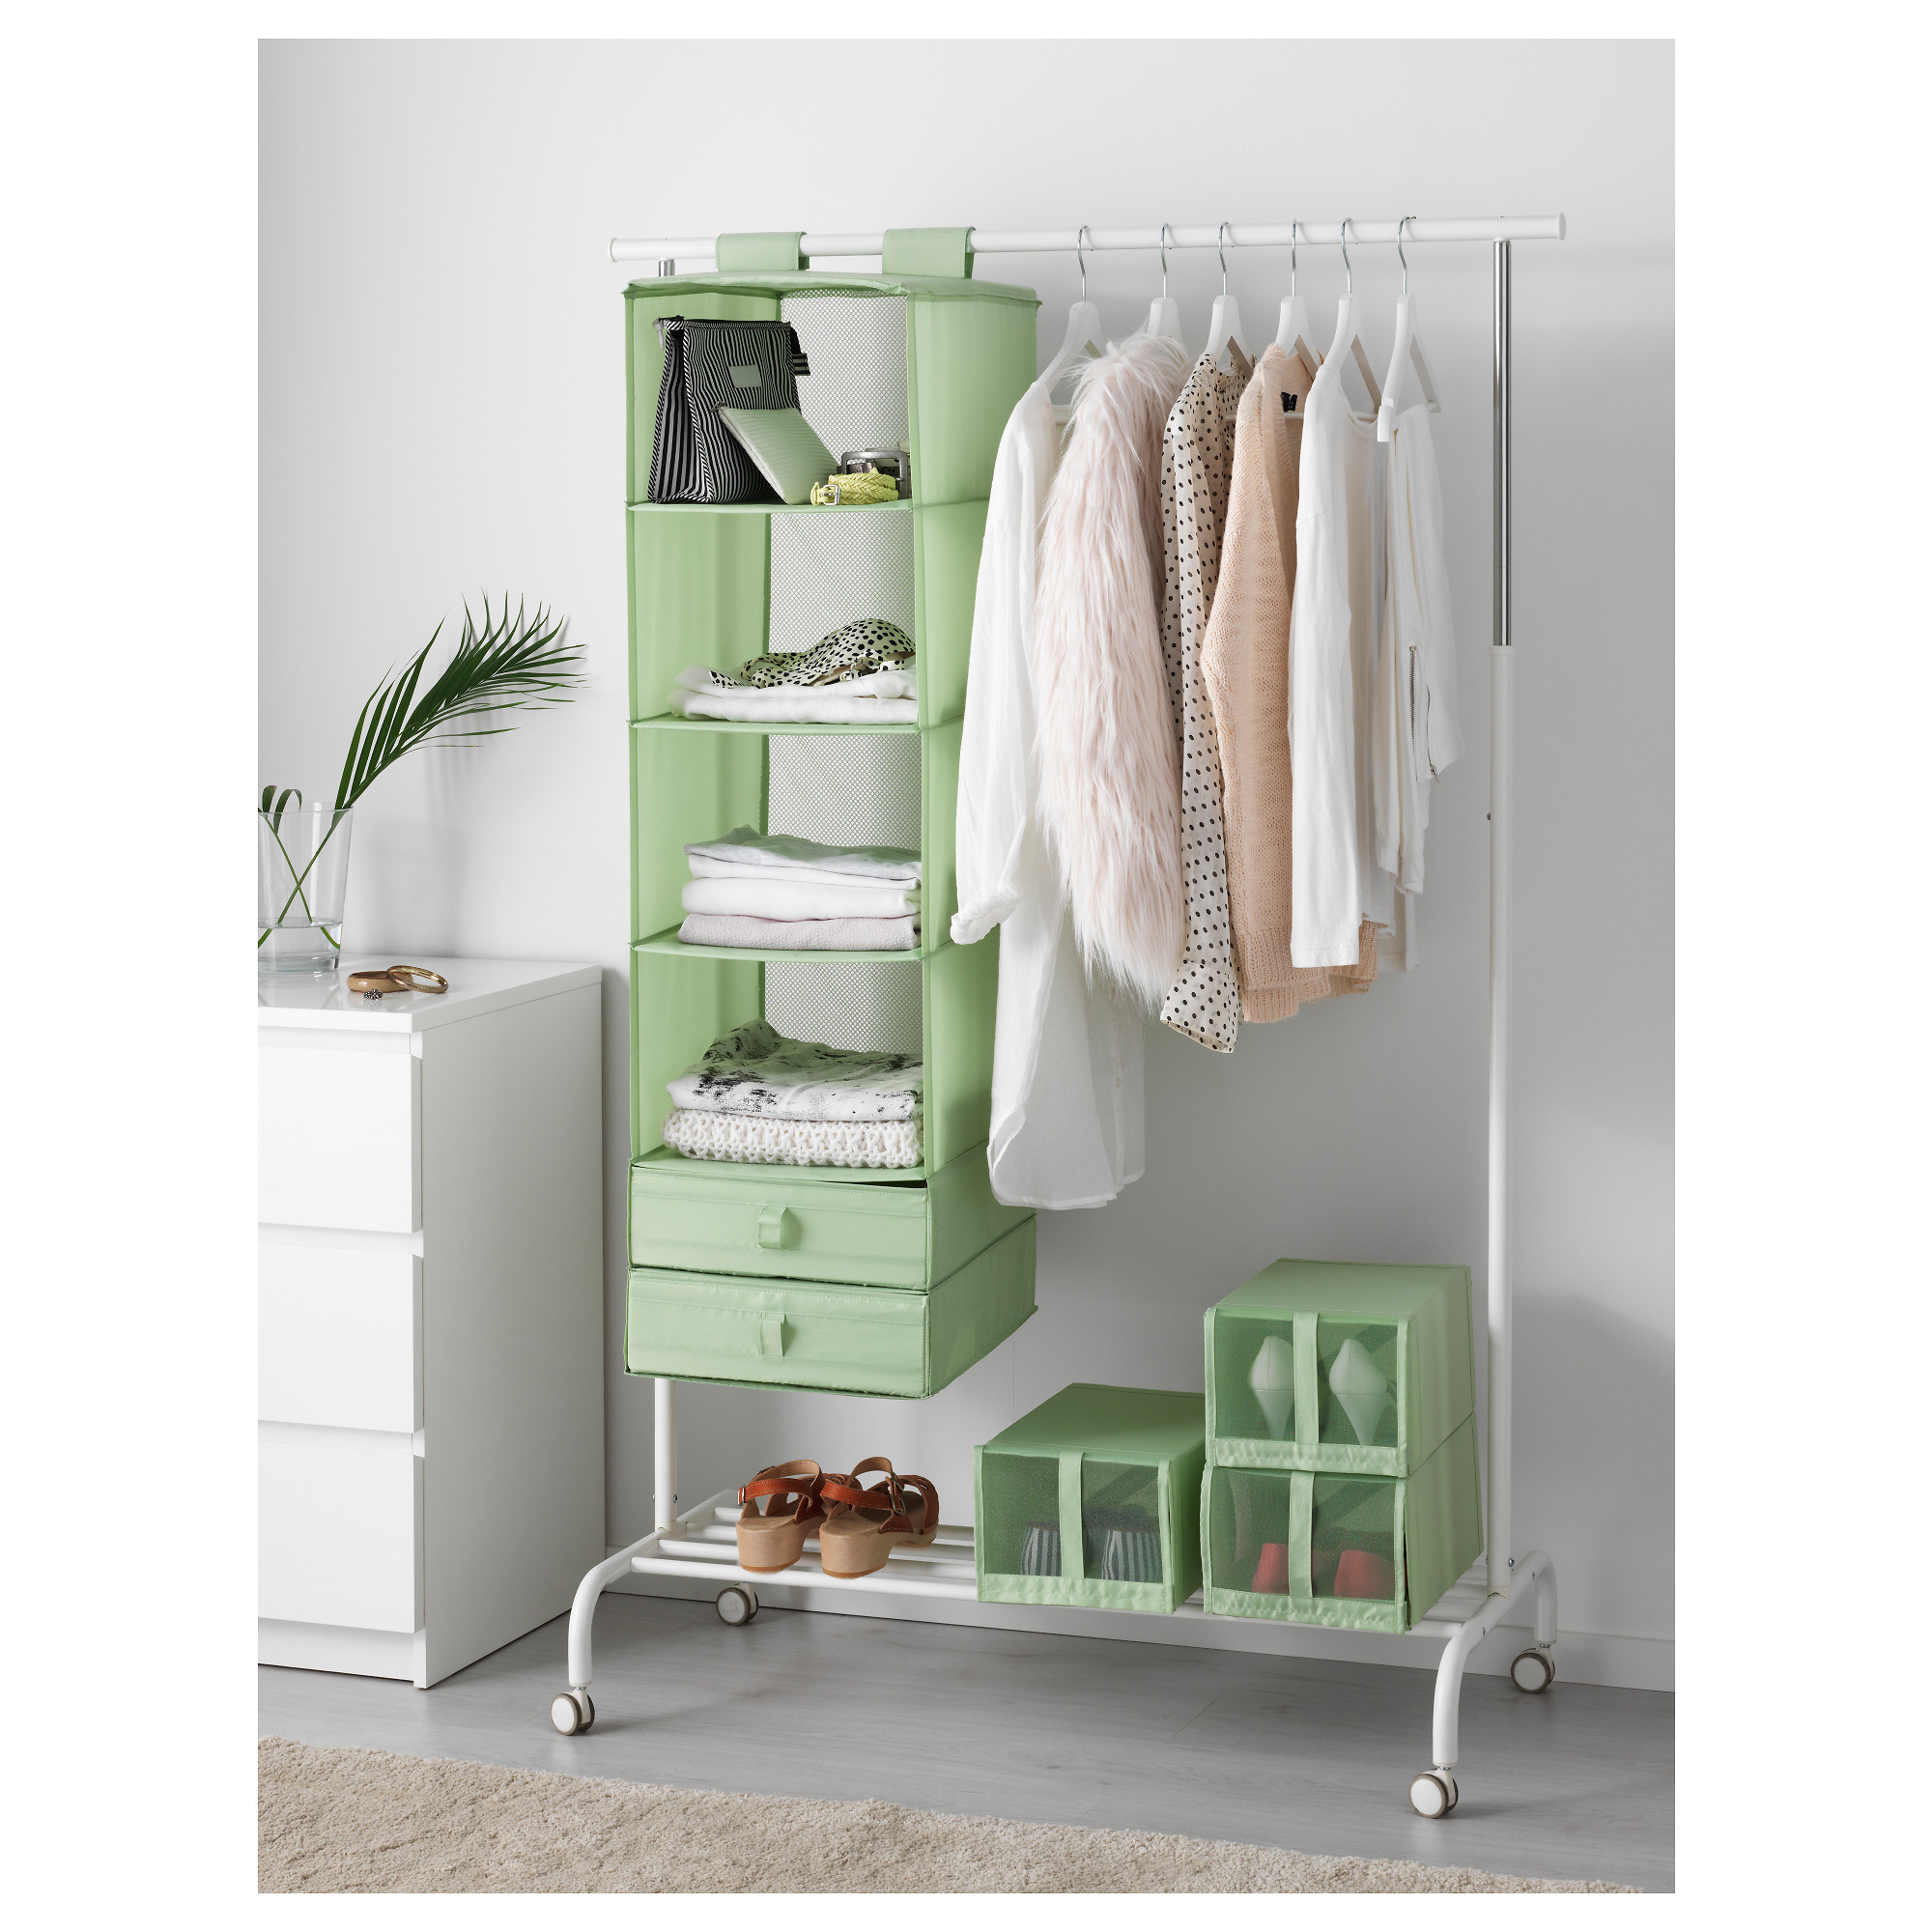 Best ideas about Clothes Storage Ideas For Small Spaces . Save or Pin 12 Super Creative Storage Ideas For Small Spaces Now.